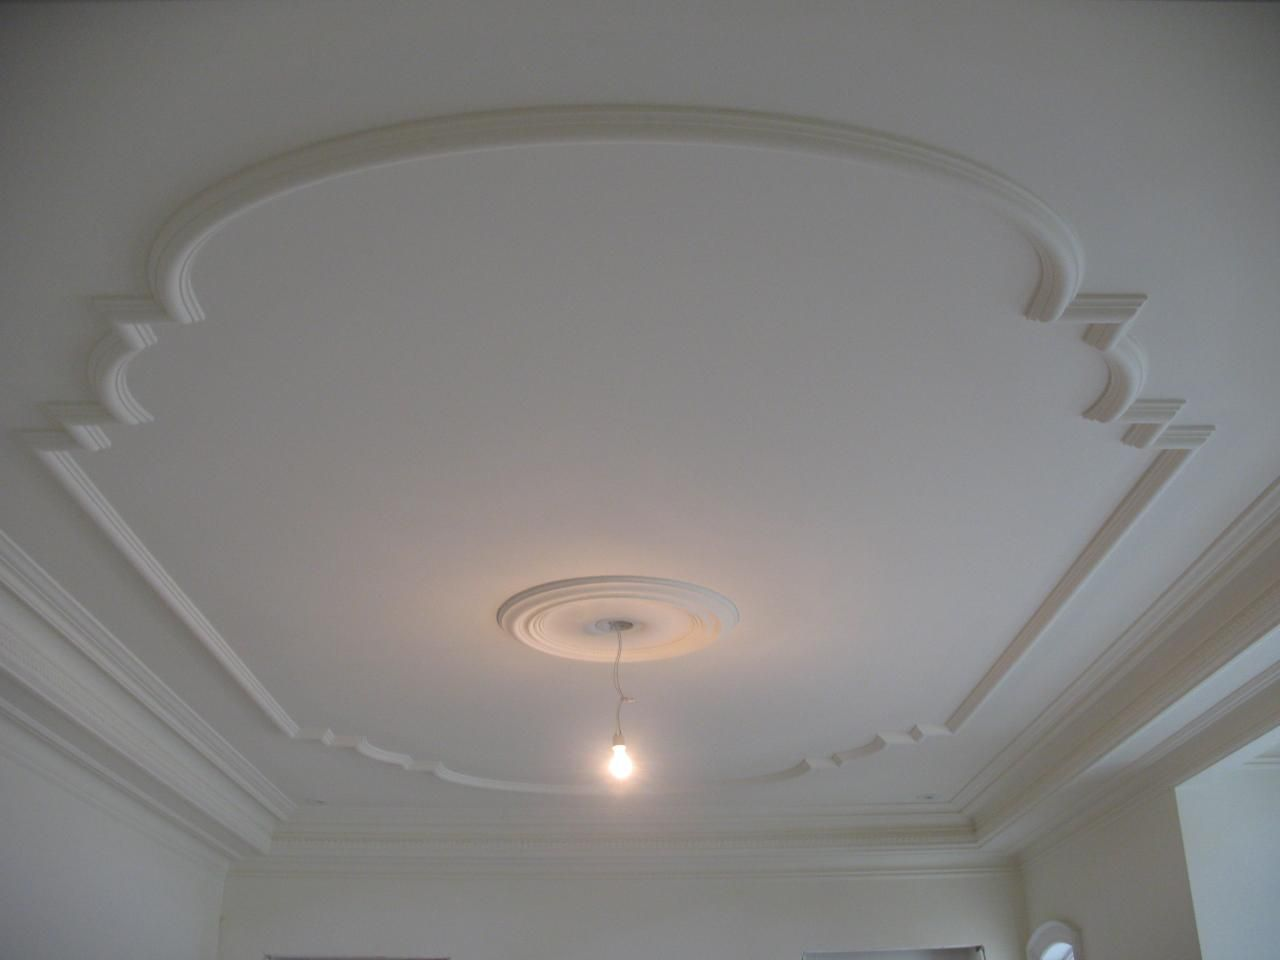 Pin By Manjeet Singh On Ceiling Design In 2019 Home Ceiling Molding Ceiling Ceiling Design